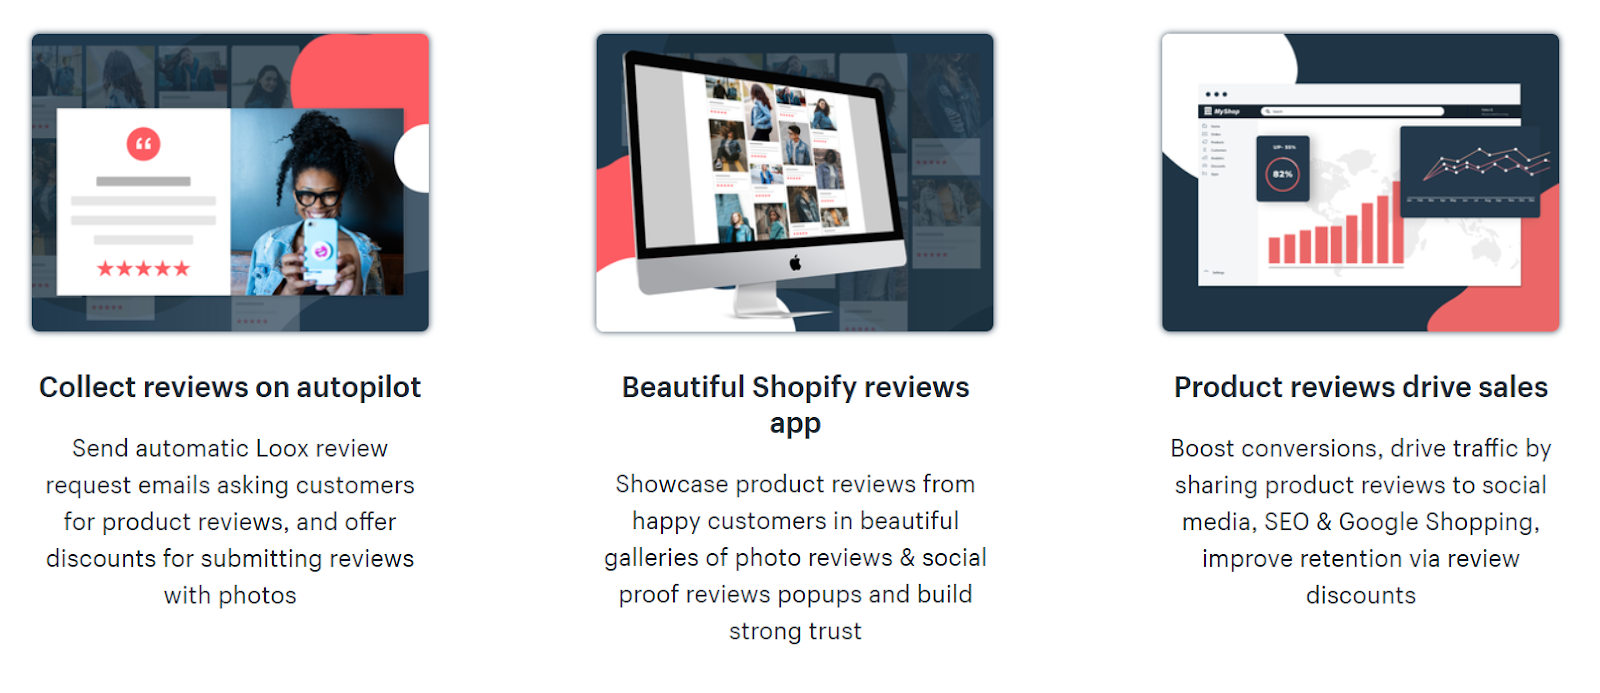 Promote sales of product reviews